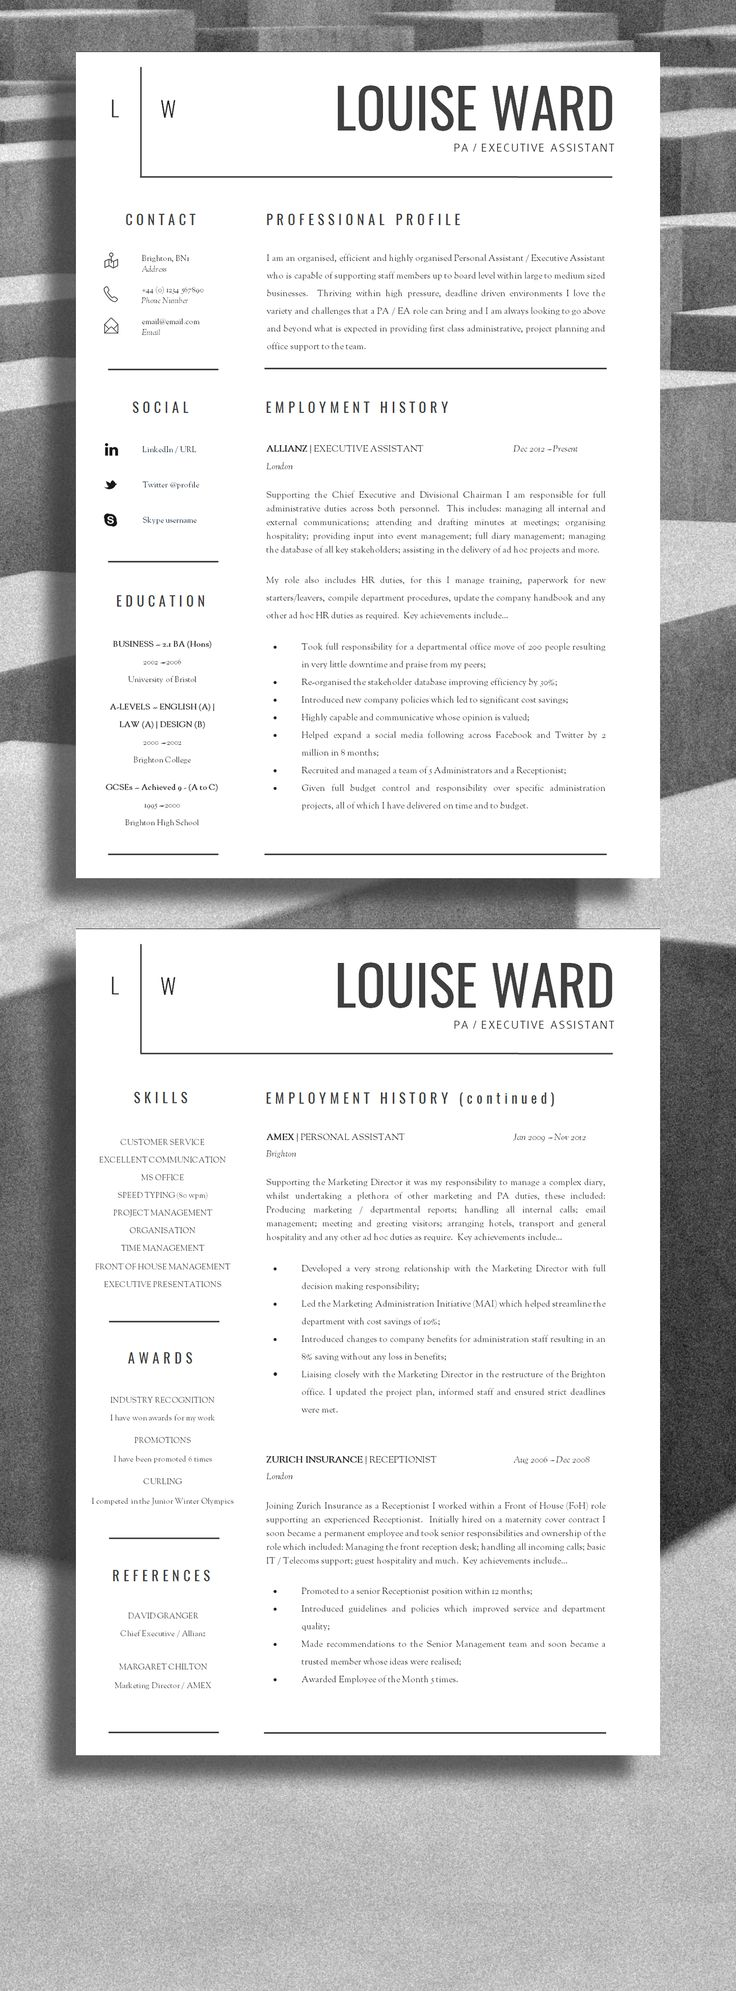 Personal Assistant Cv Template Good Cv Statements Cover Letter